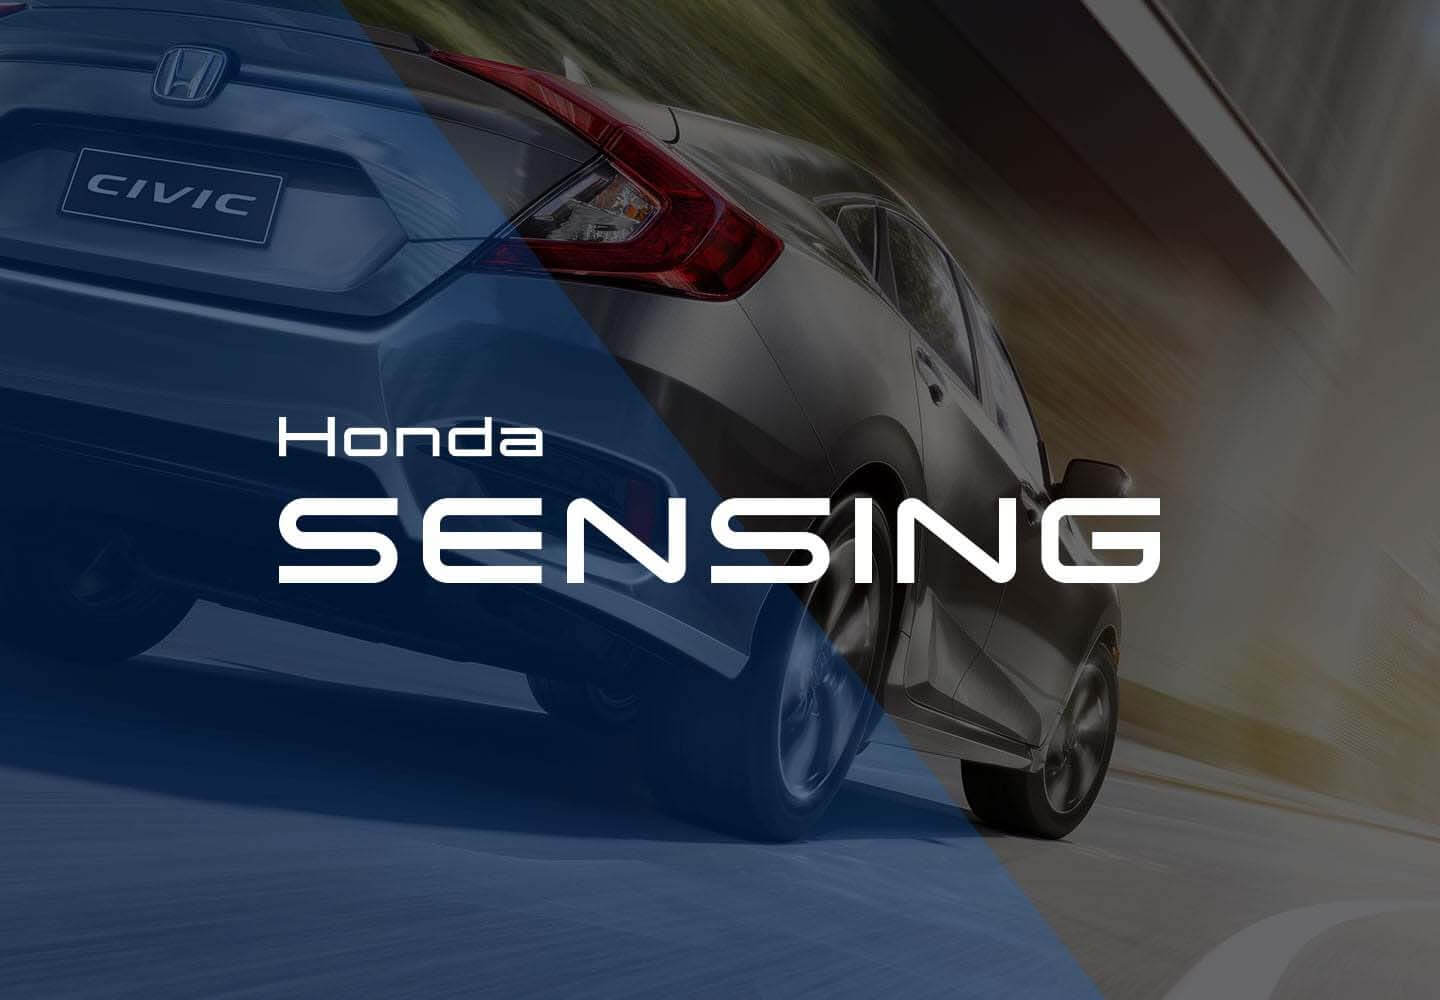 Civic Sedan Honda Sensing